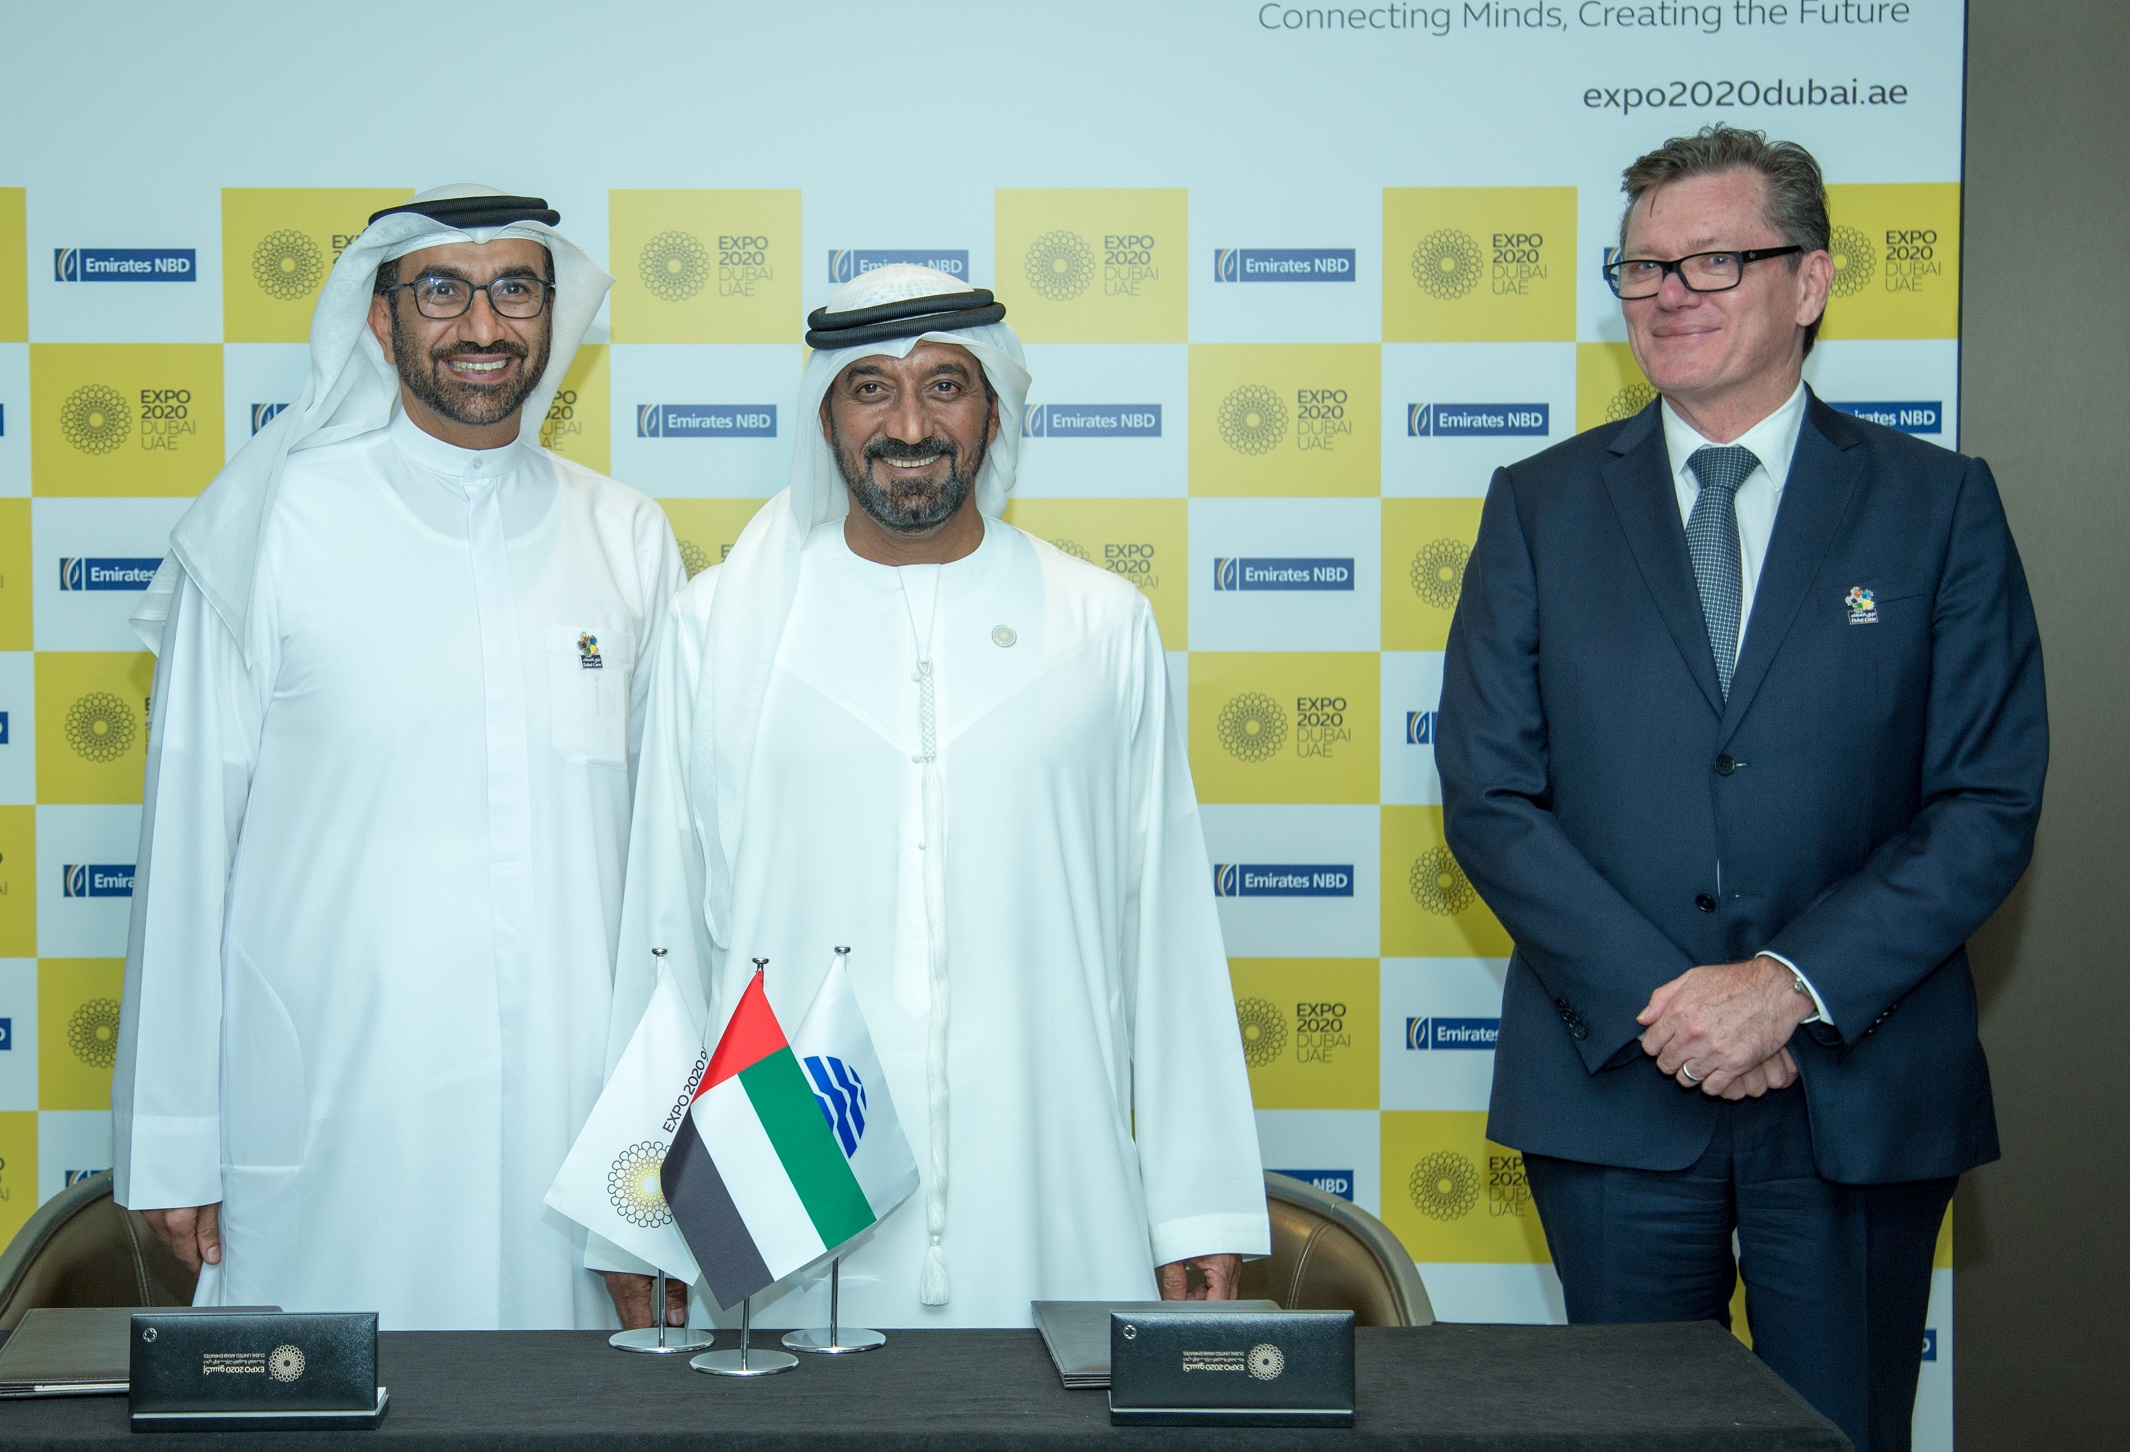 emirates nbd group becomes official banking partner for expo 2020 dubai